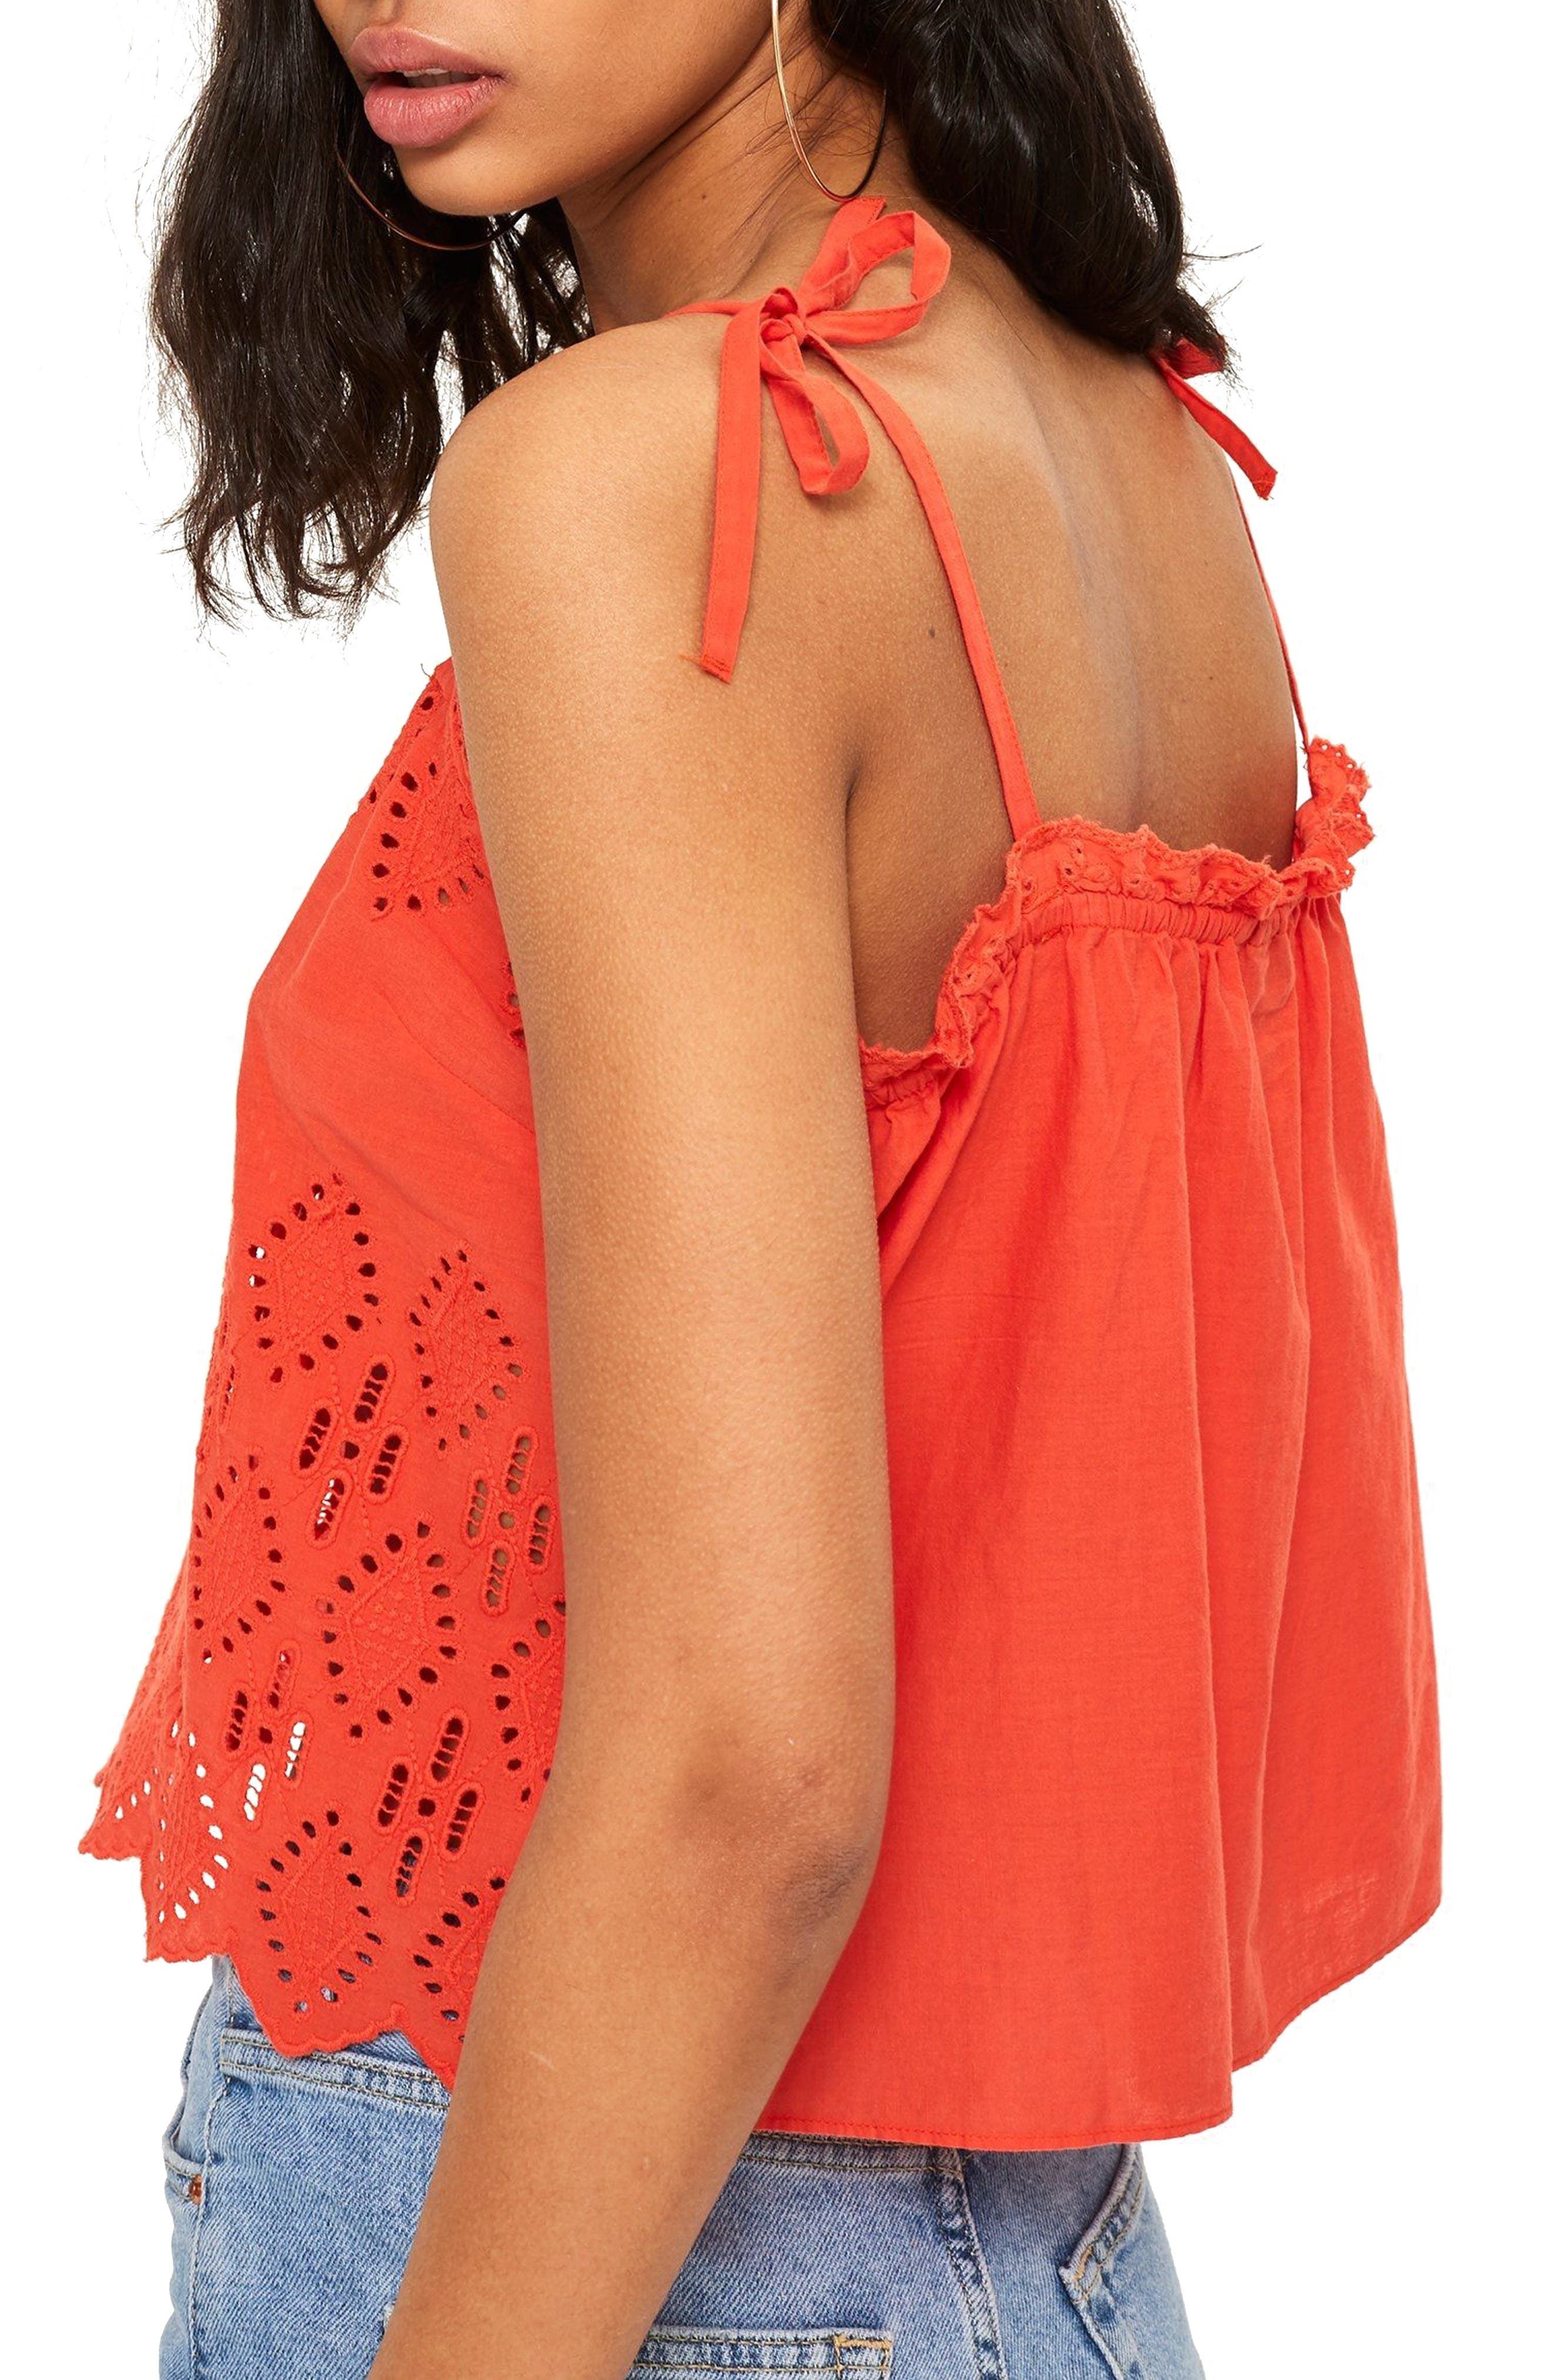 Broderie Camisole Top,                             Alternate thumbnail 2, color,                             Coral